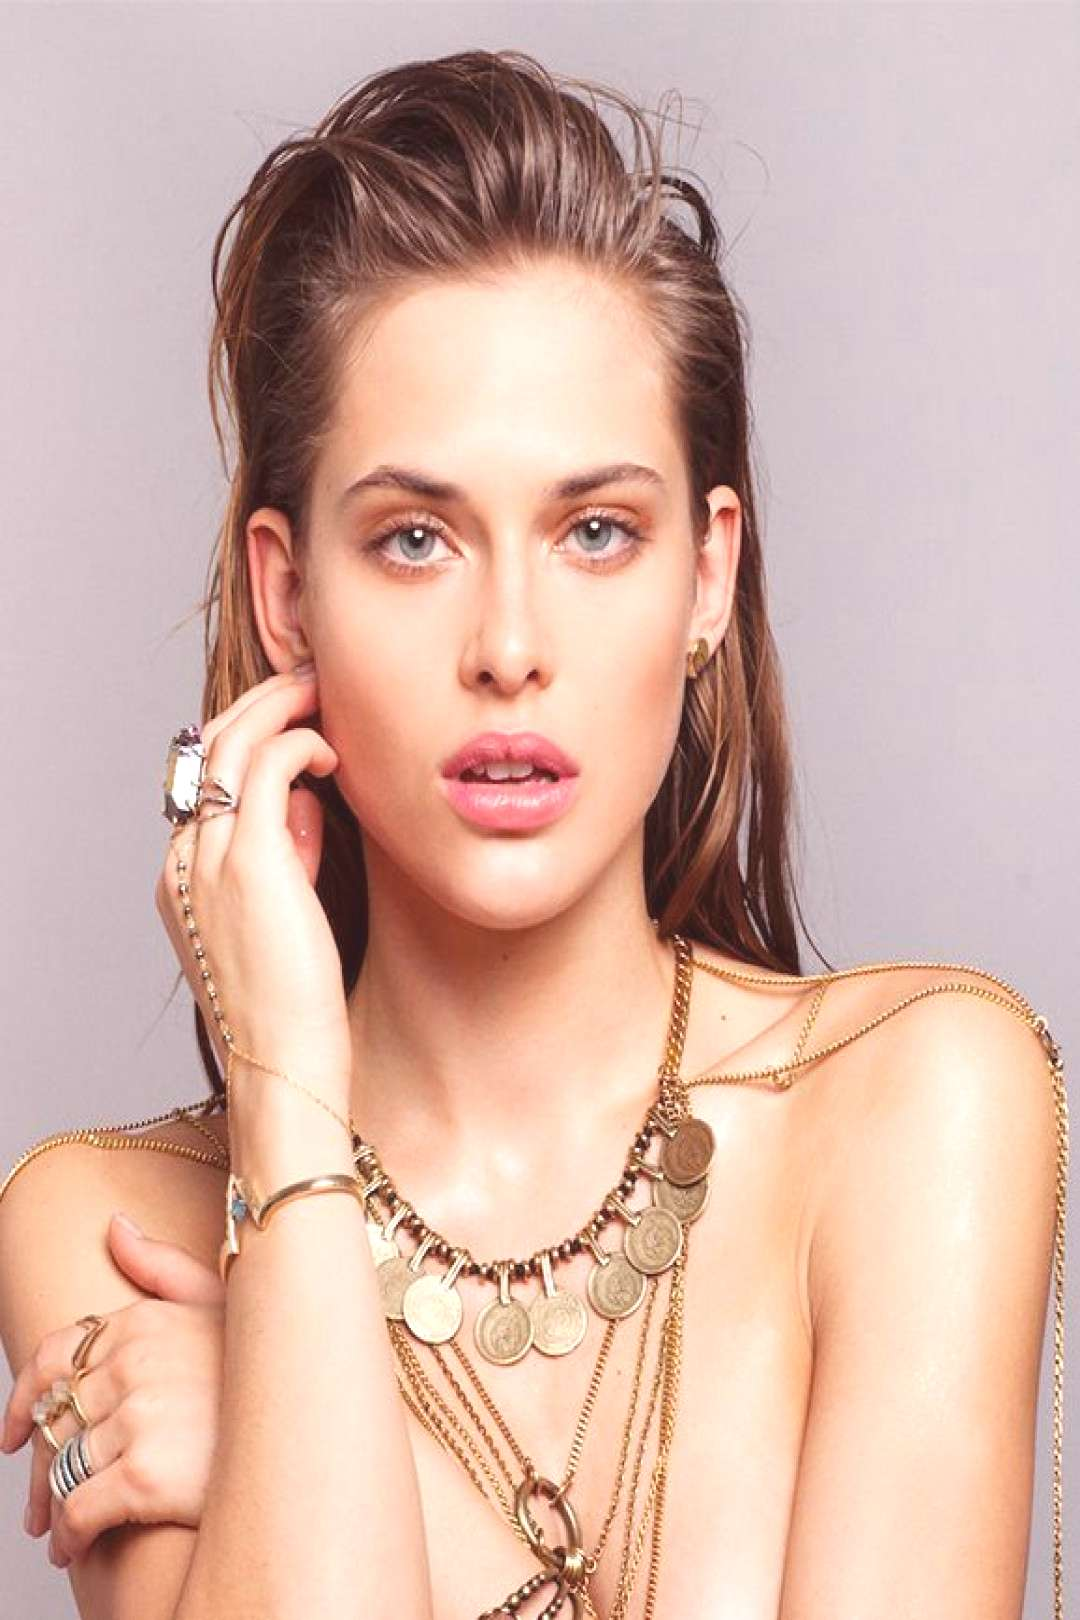 More is more: an original jewelry editorial - women's accessories - bags - letter ... -  More is mo